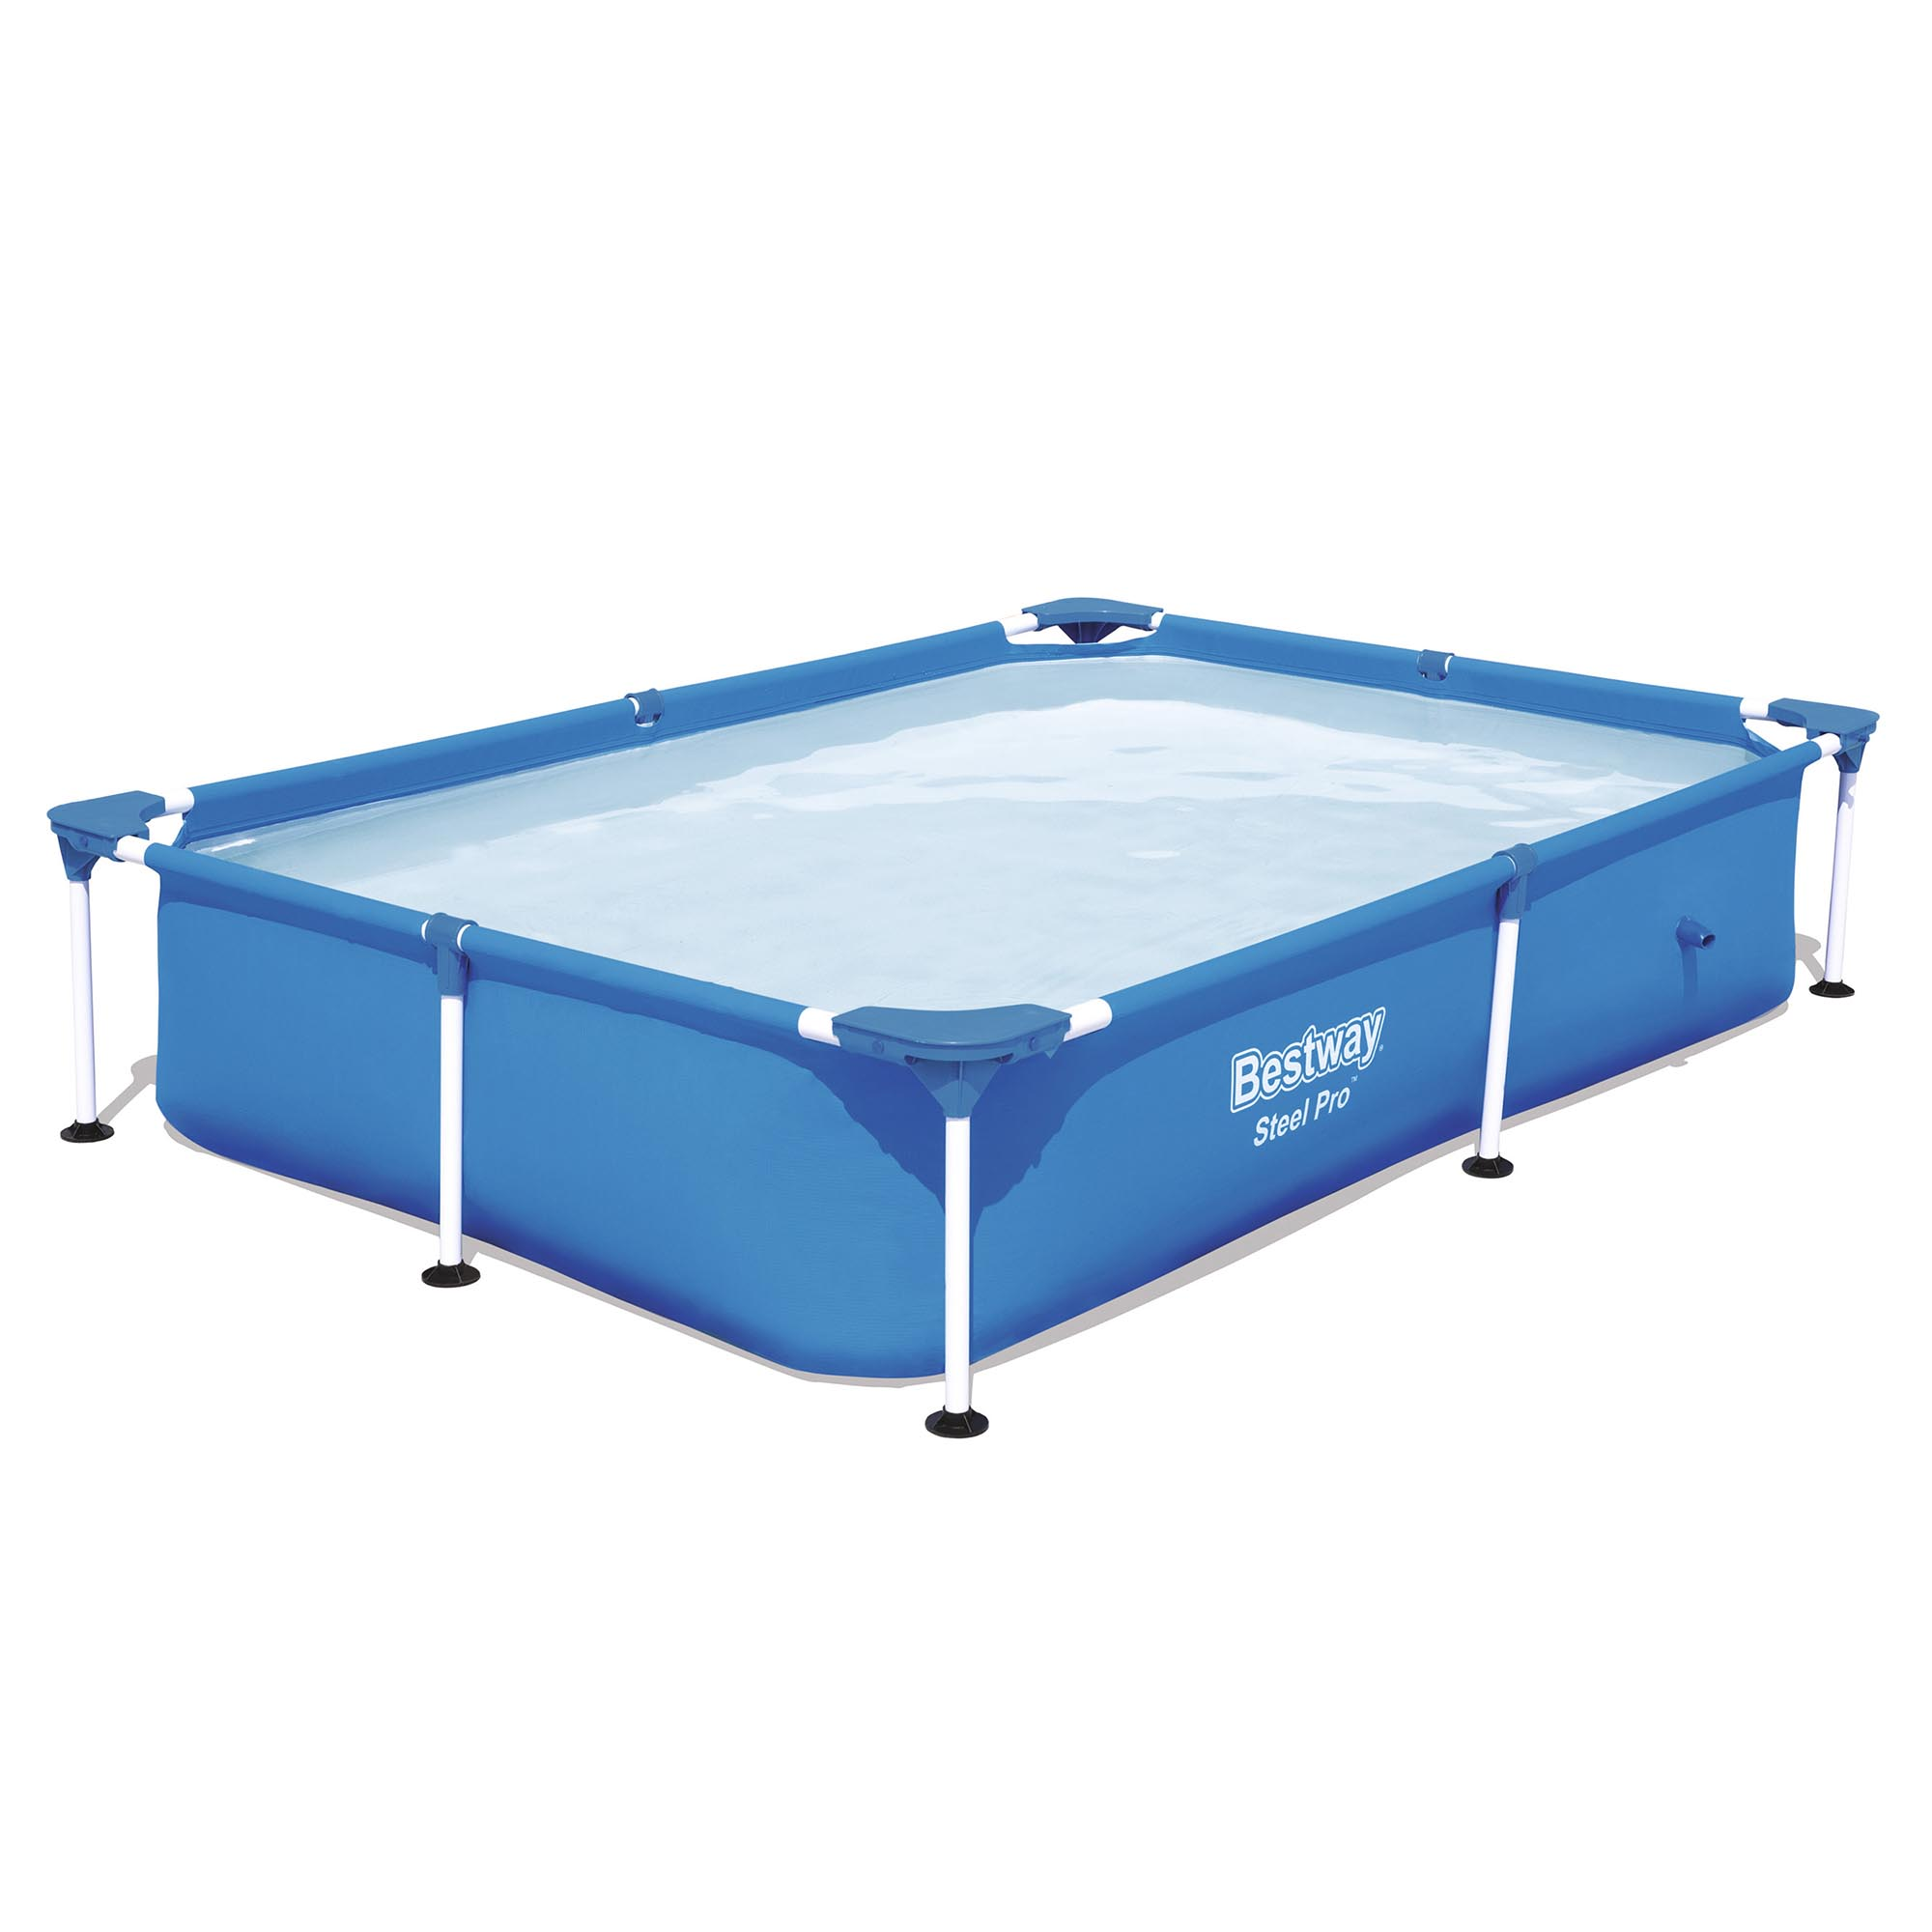 "Bestway Steel Pro 87 x 59 x 17"" Rectangular Frame Above Ground Swimming Pool by Bestway"